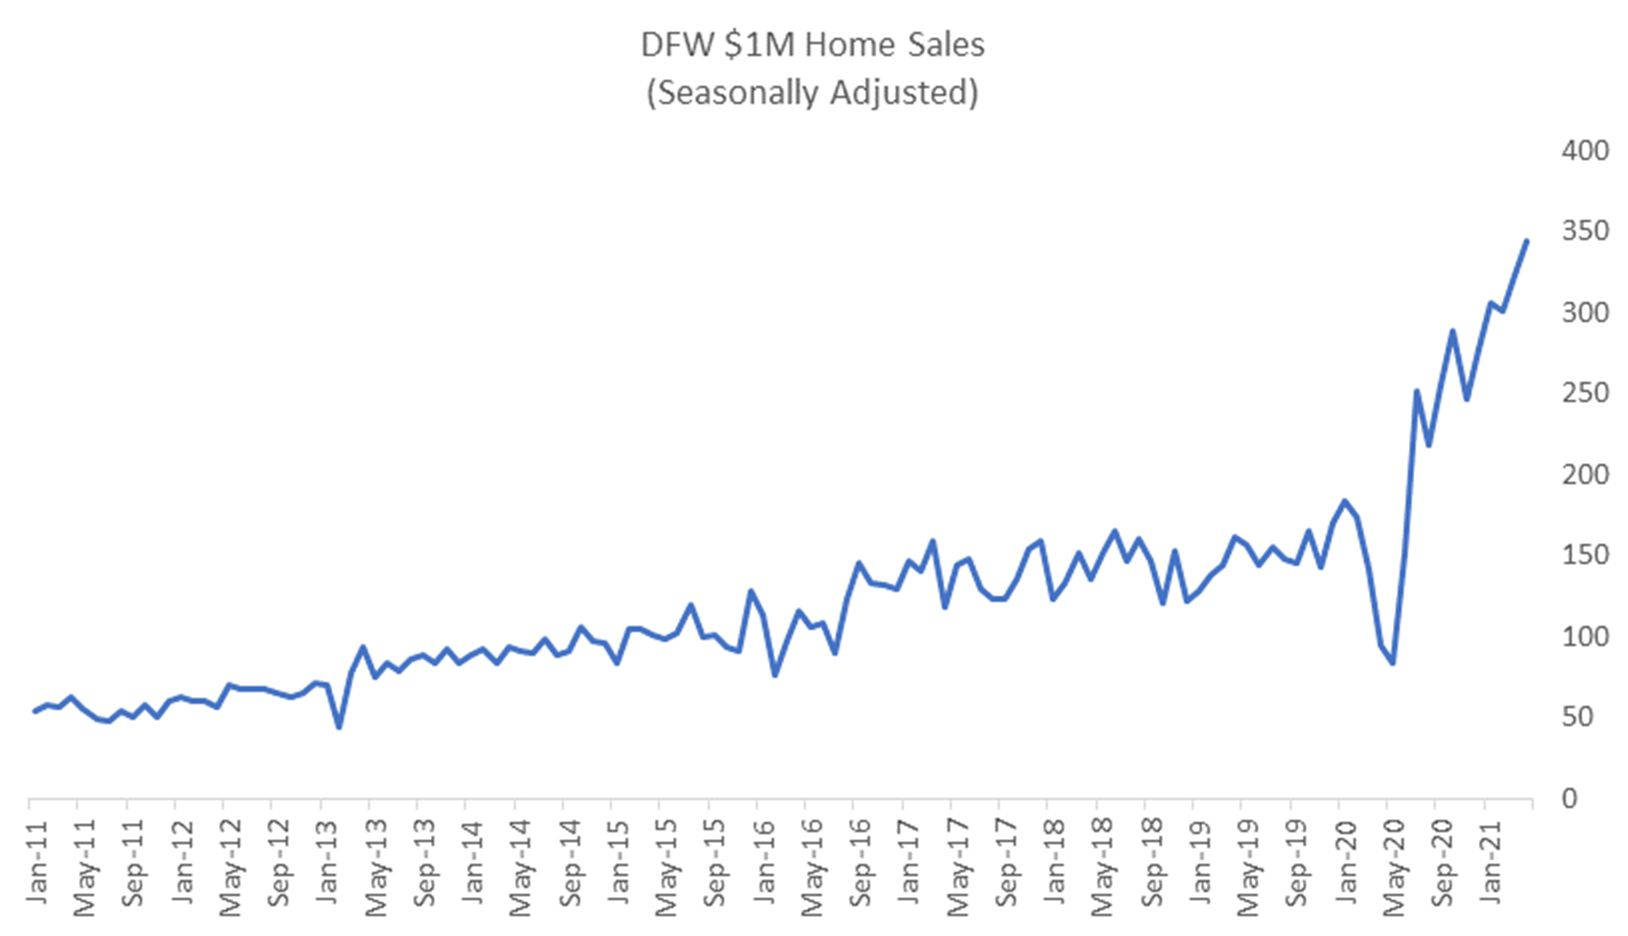 Million dollar home sales have soared in D-FW in the last decade.